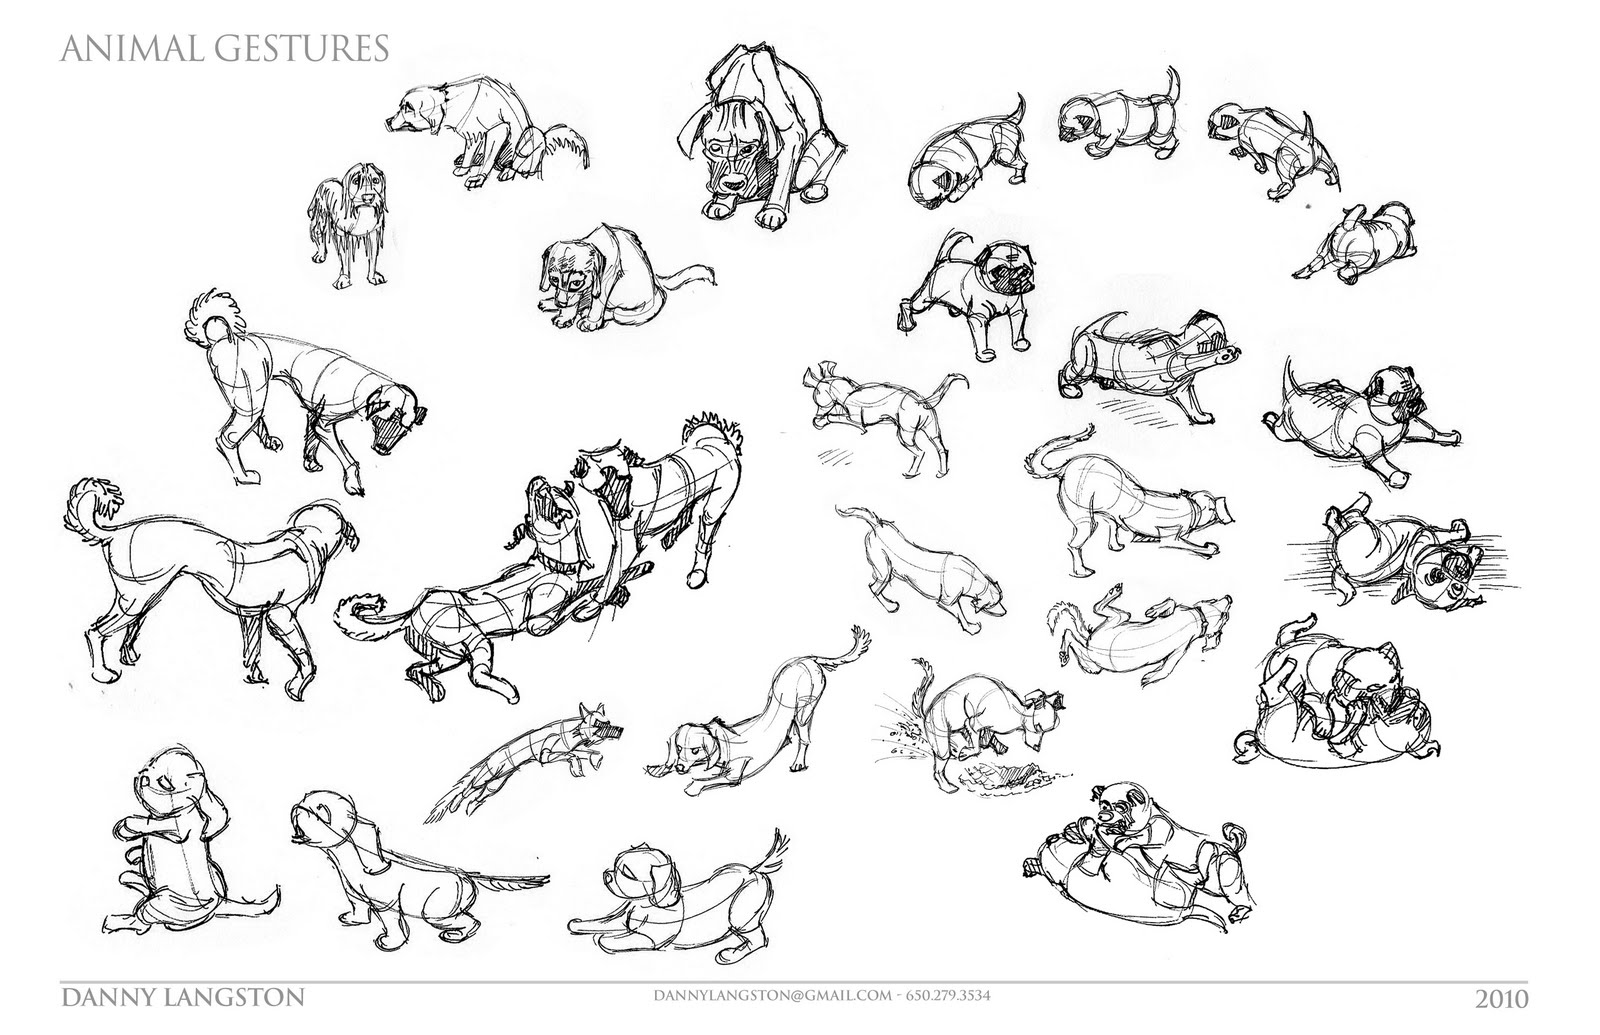 Danny Langston: Quick Sketches, Life Drawing and Animal